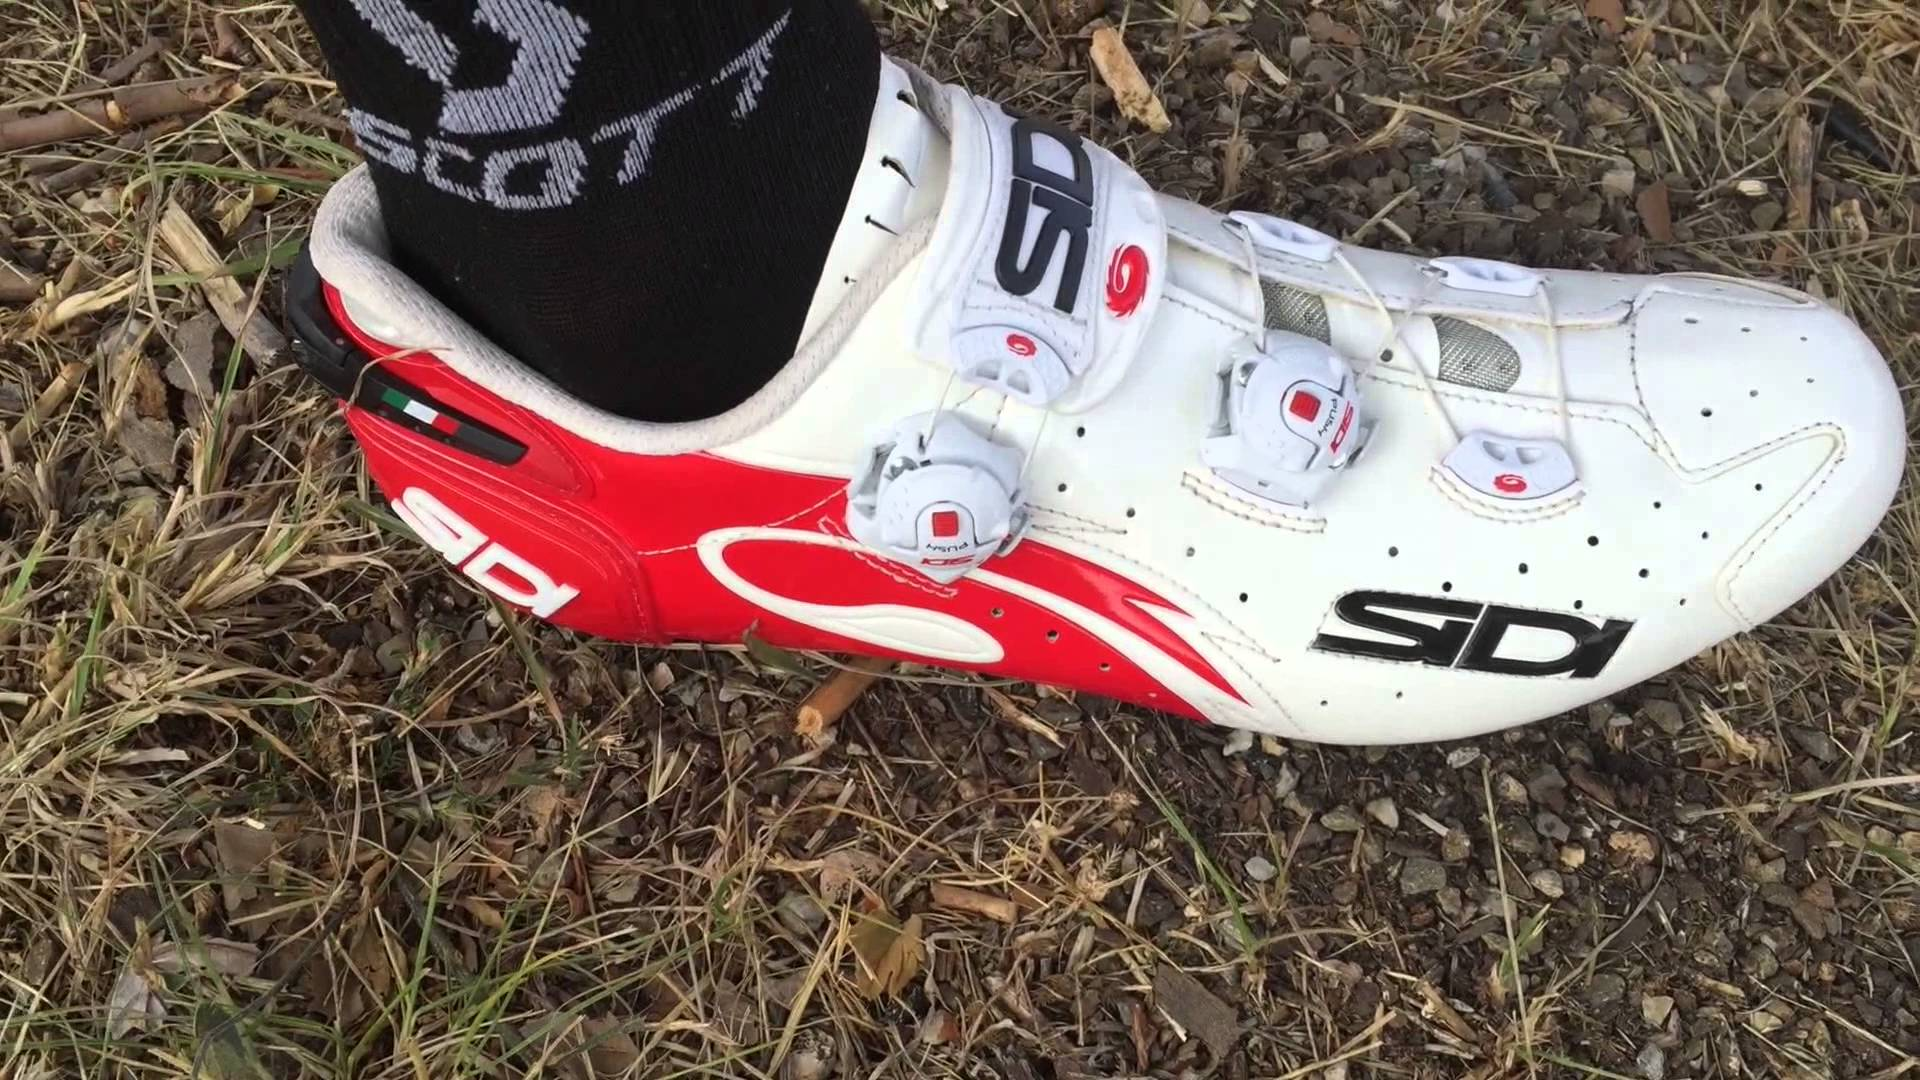 Sidi Wire Road Shoes | Sidi Ergo 3 Review | Sidi Wire Carbon Vernice